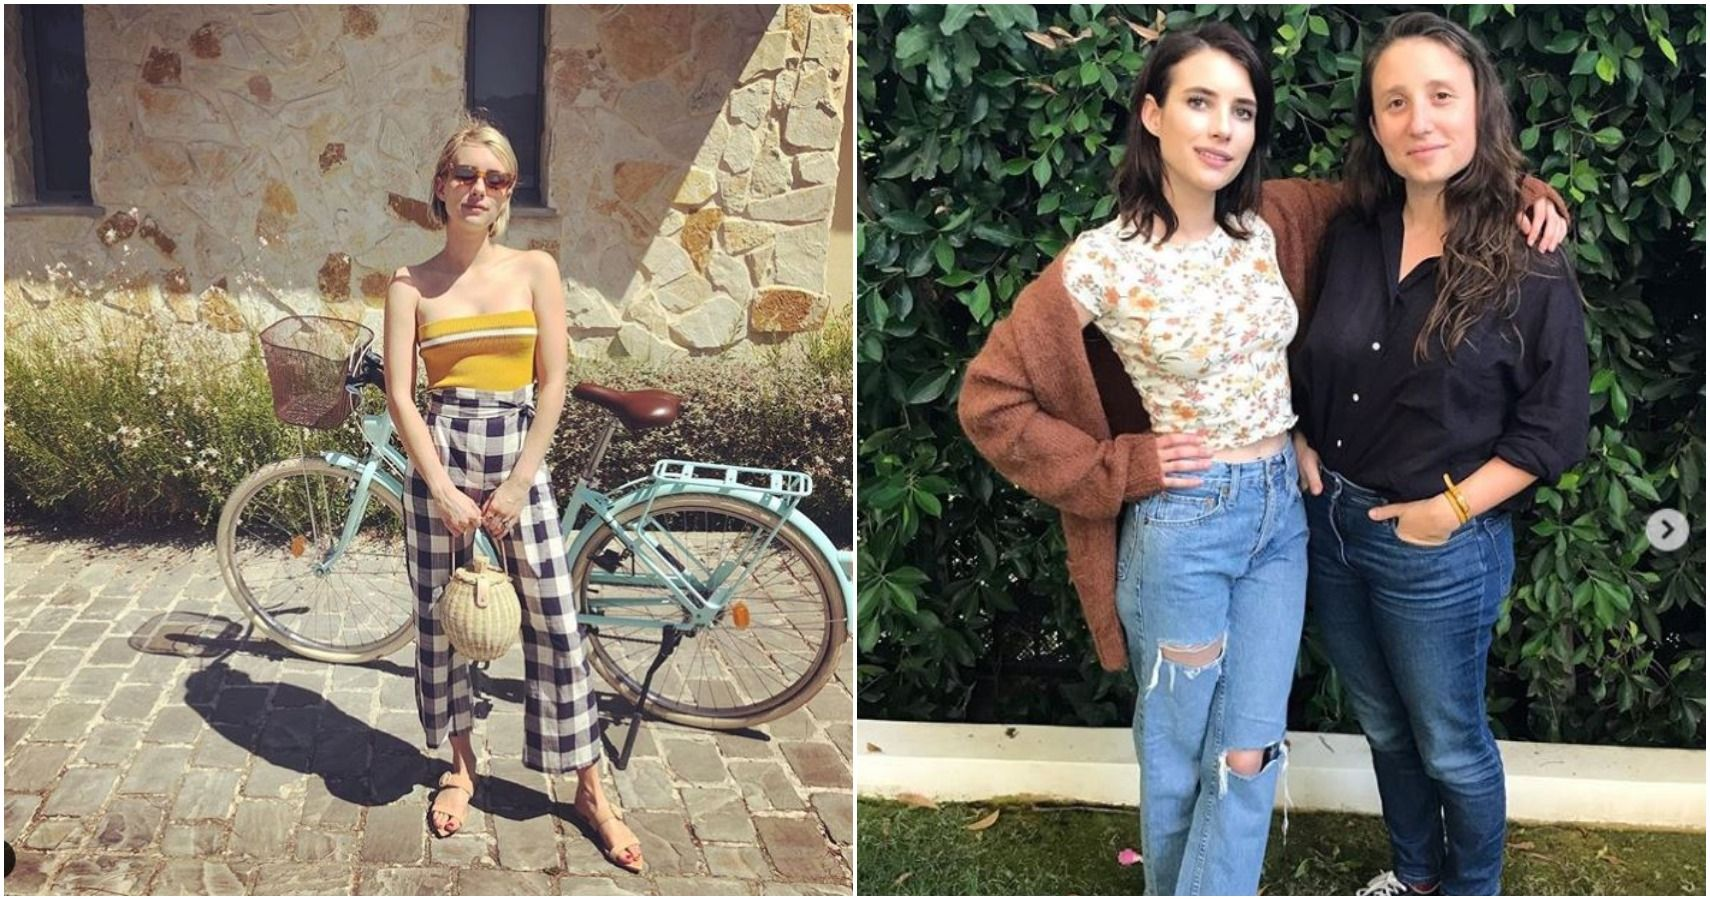 10 Things You Wouldn't Believe About Emma Roberts Unless She Herself Told You